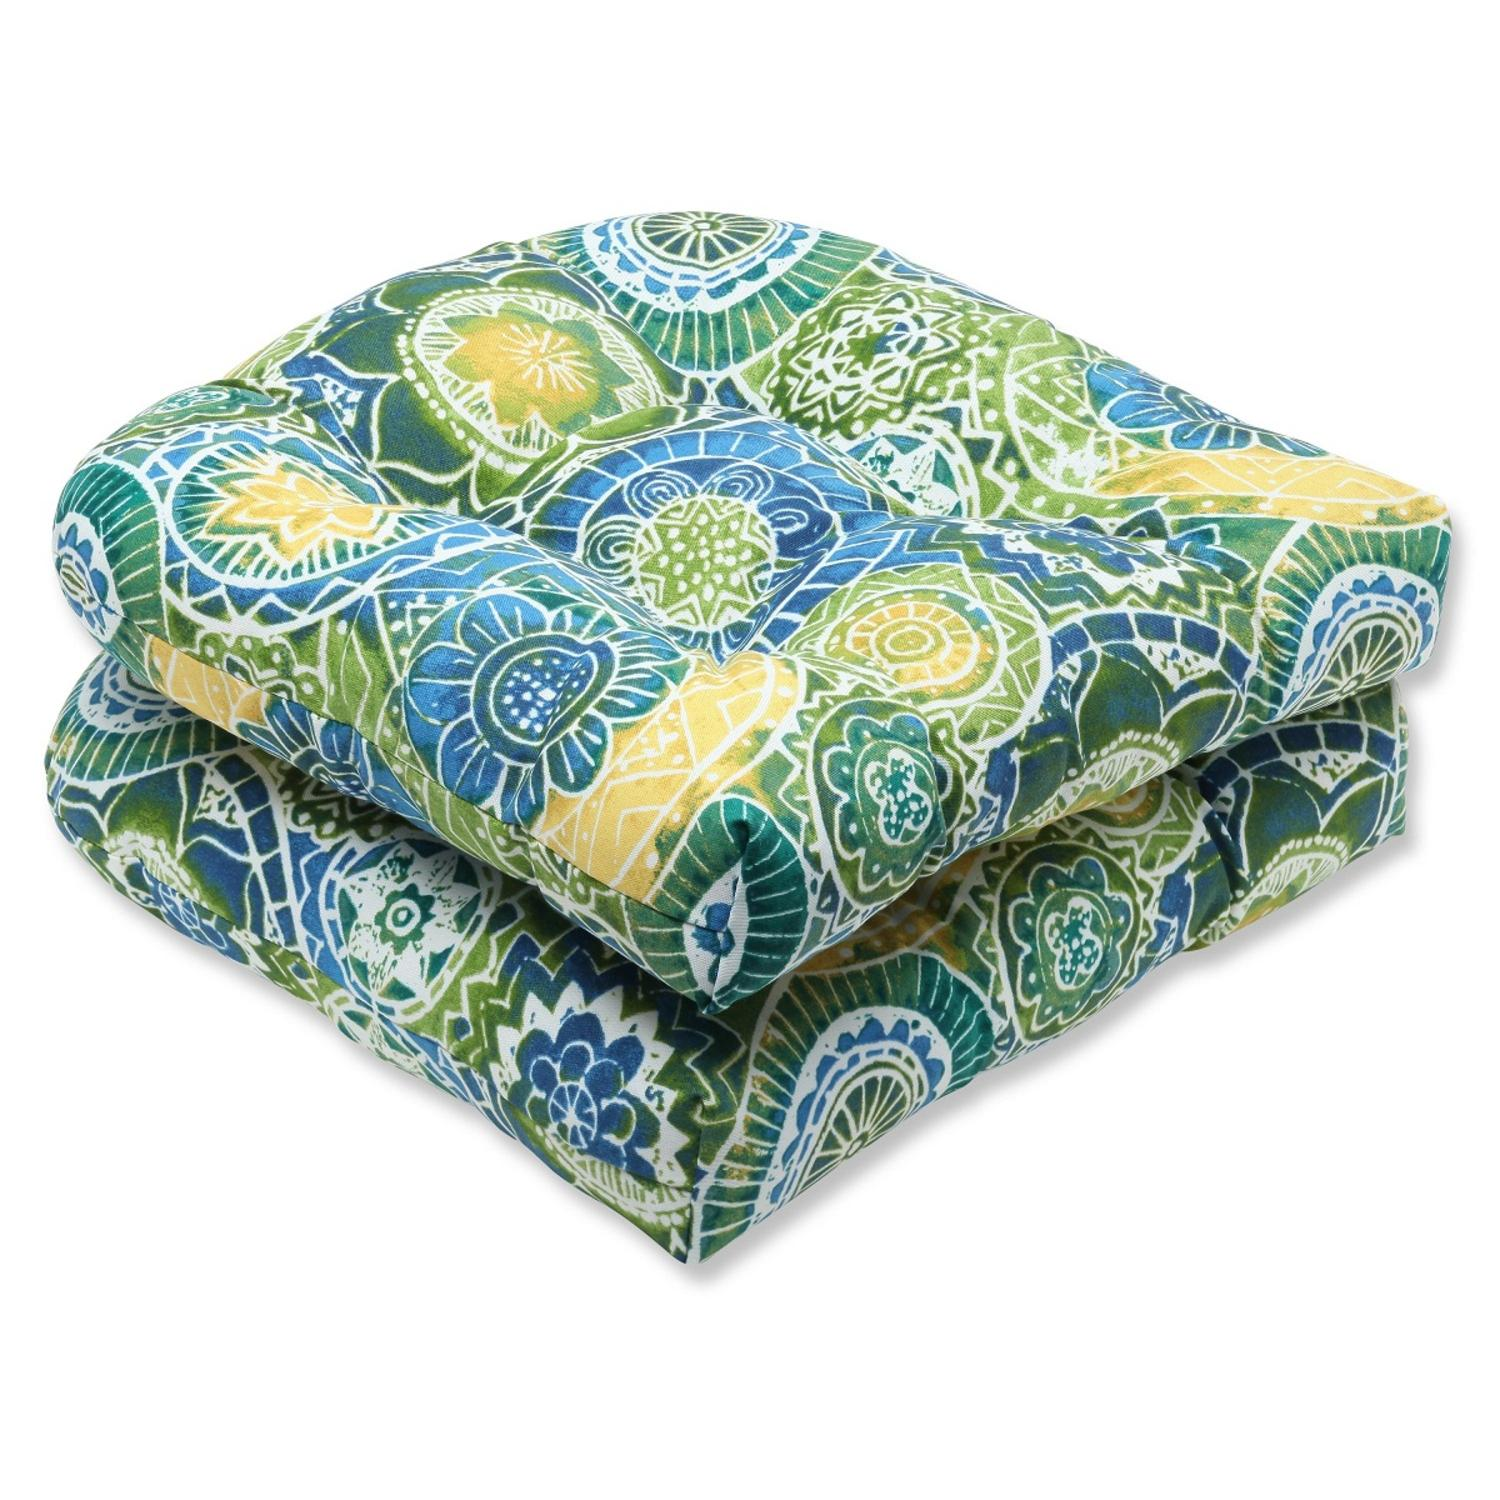 Set of 2 Laguna Mosaico Blue, Green and Yellow Outdoor Patio Wicker Chair Cushions 19""